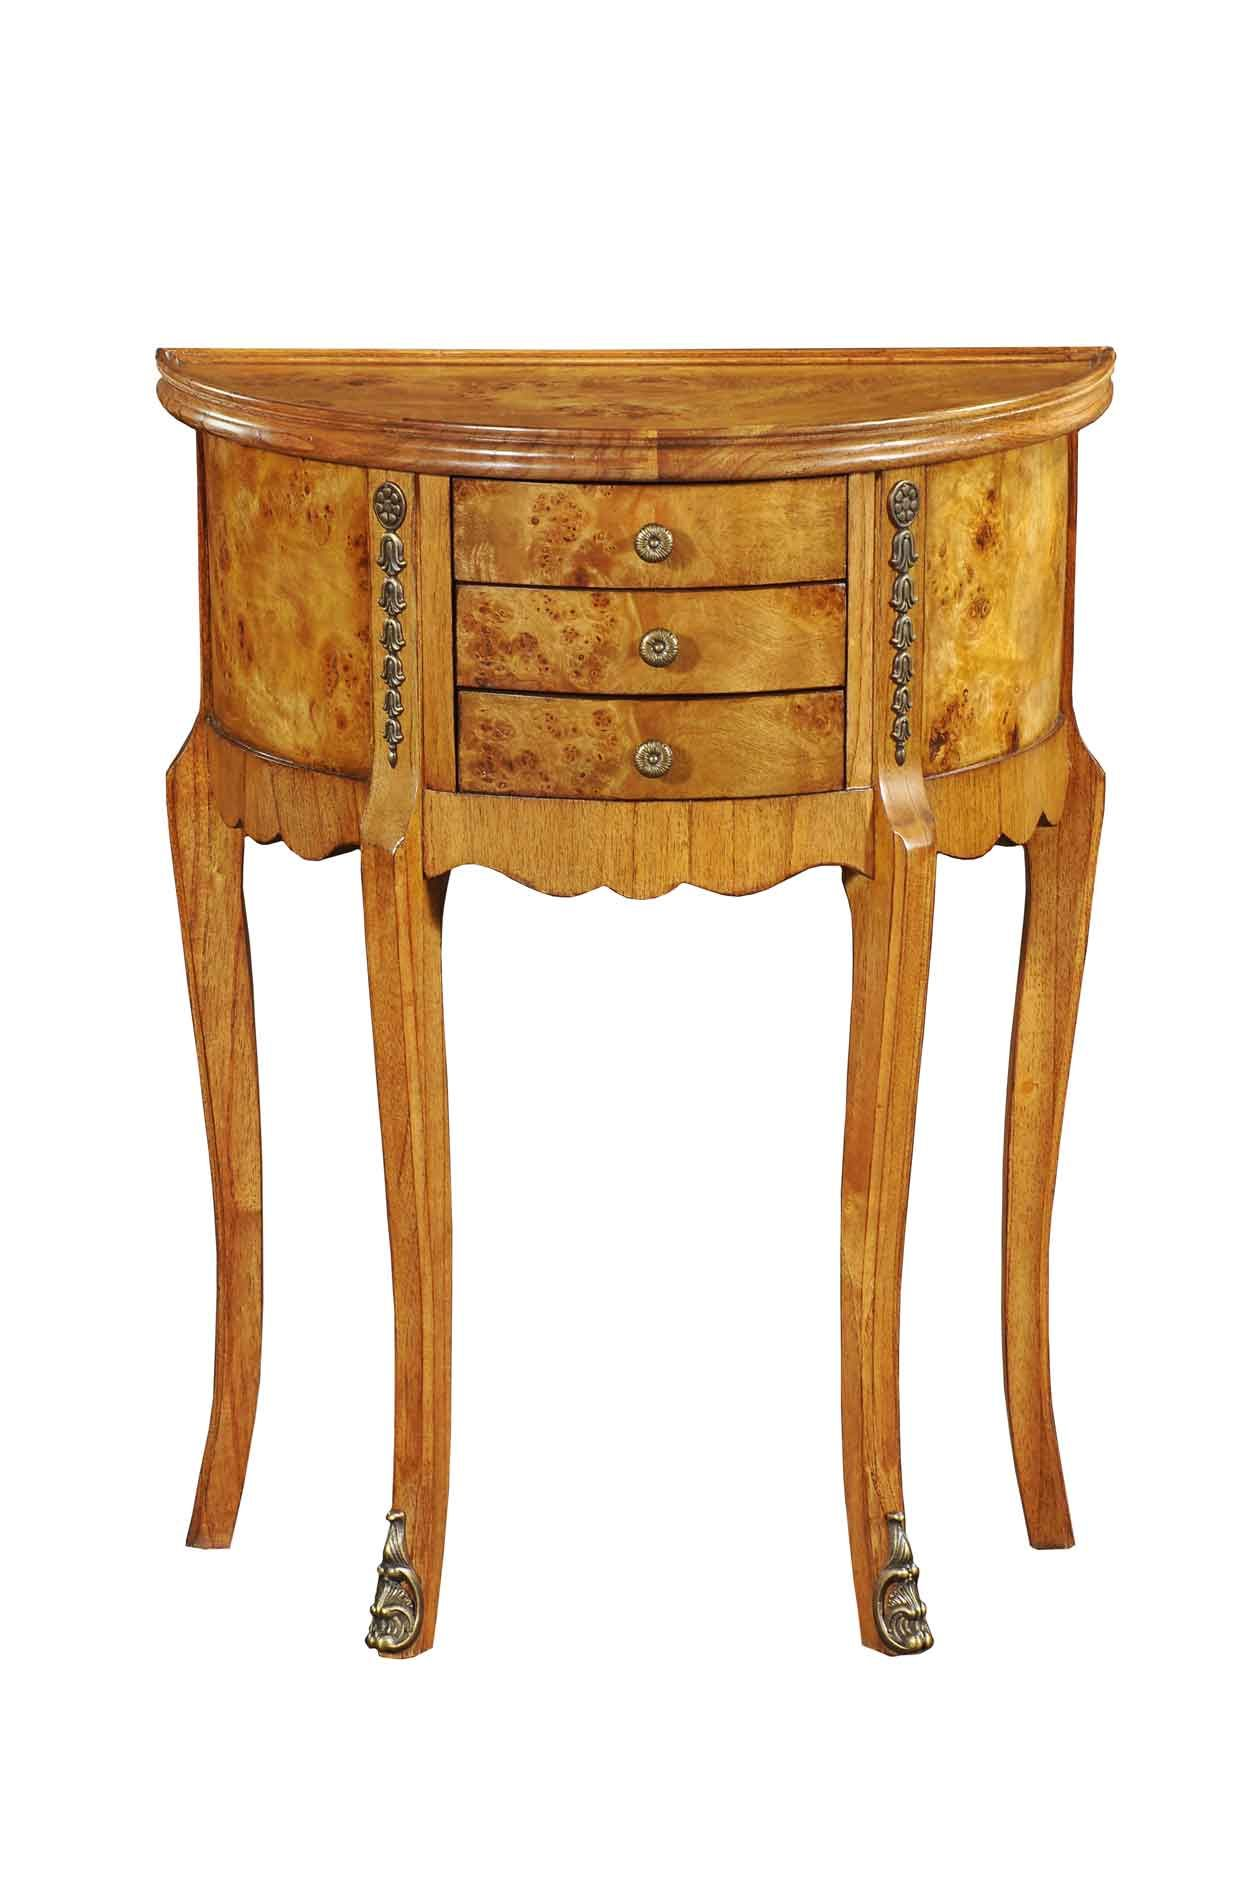 demi lune table with 3 drawers in burr walnut. Black Bedroom Furniture Sets. Home Design Ideas